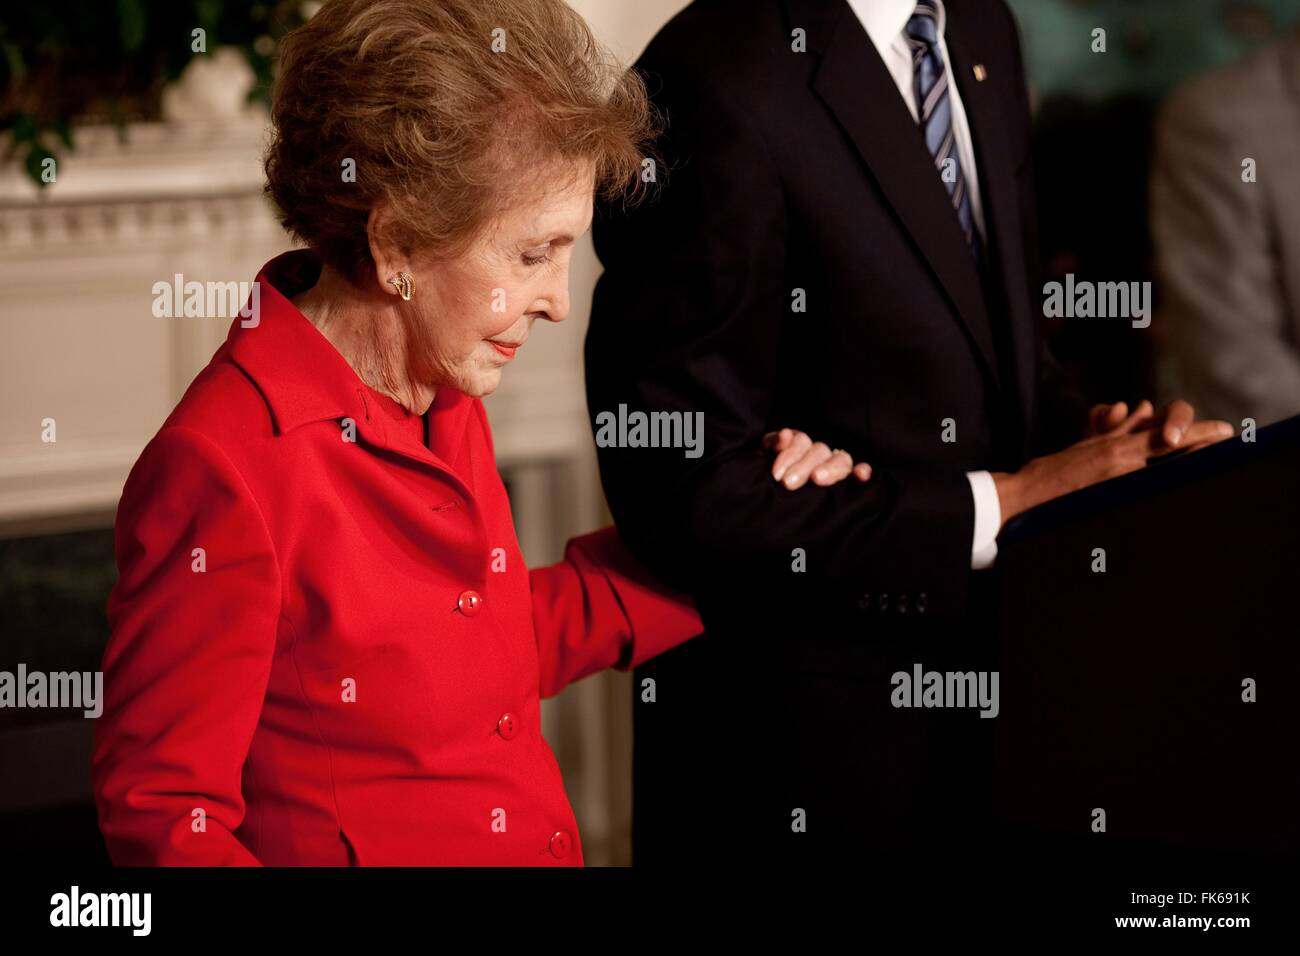 Anne Duarte Escort mrs ronald reagan high resolution stock photography and